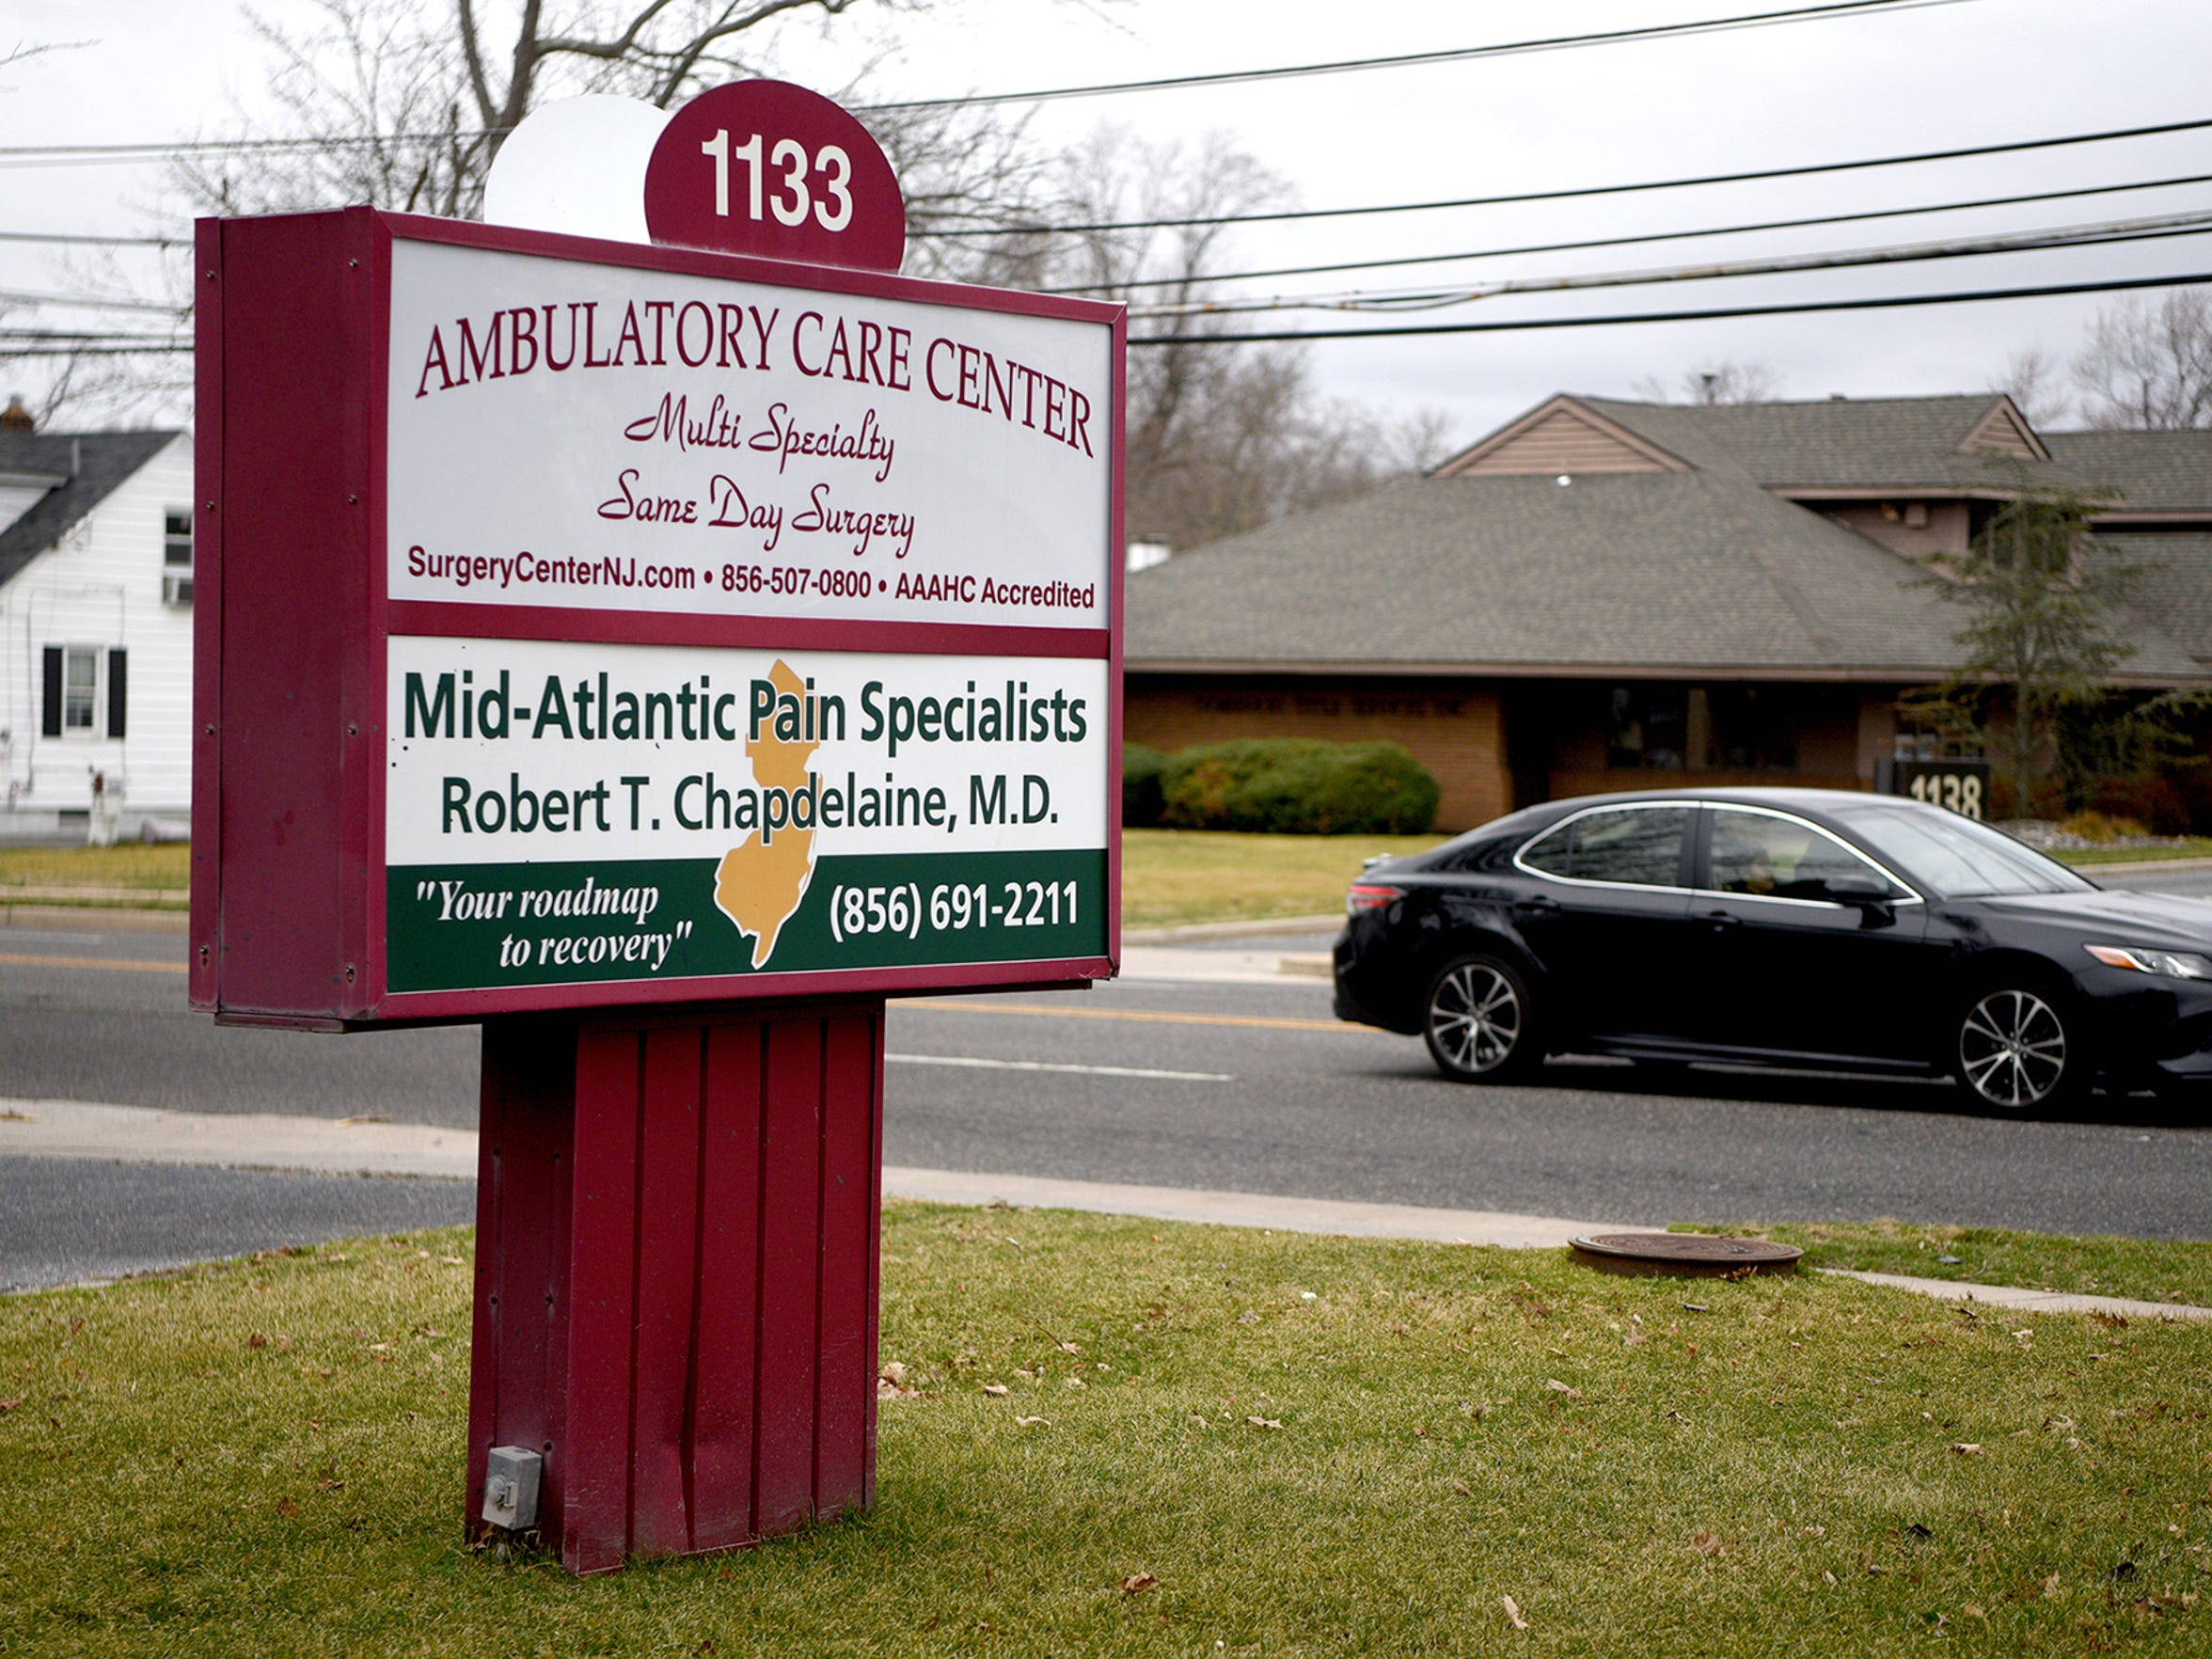 Pedro Maldonado died after an endoscopy at Ambulatory Care Center in Vineland, NJ. The 59-year-old pastor had a defibrillator and a history of heart problems. His widow has filed a federal lawsuit against the center and two doctors.